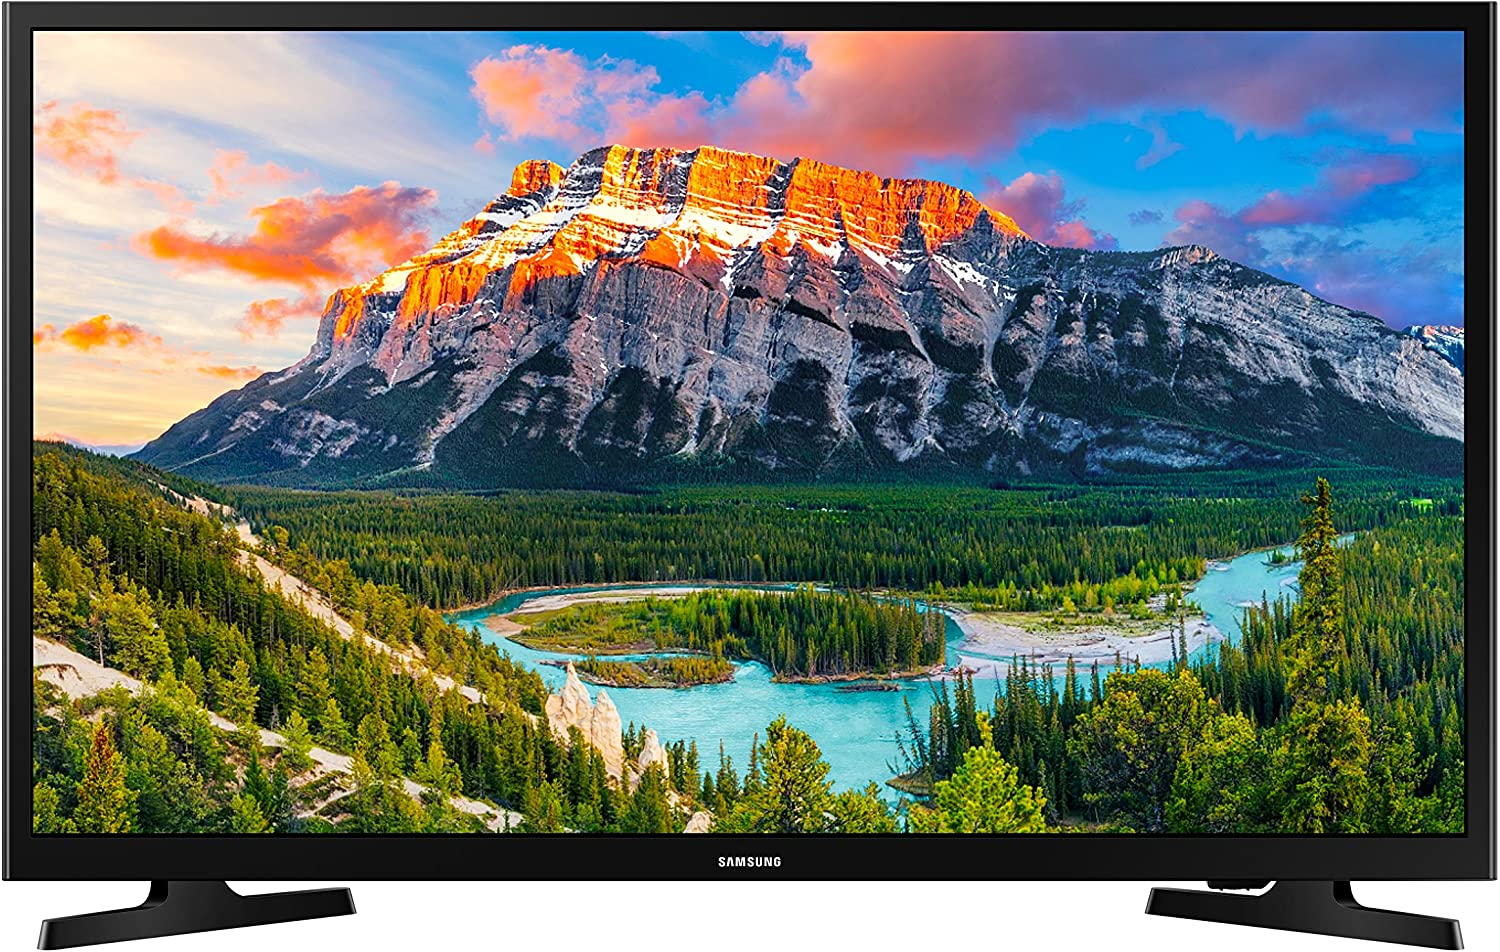 Samsung Electronics UN32N5300AFXZA 32-Inch 1080p Smart LED Television